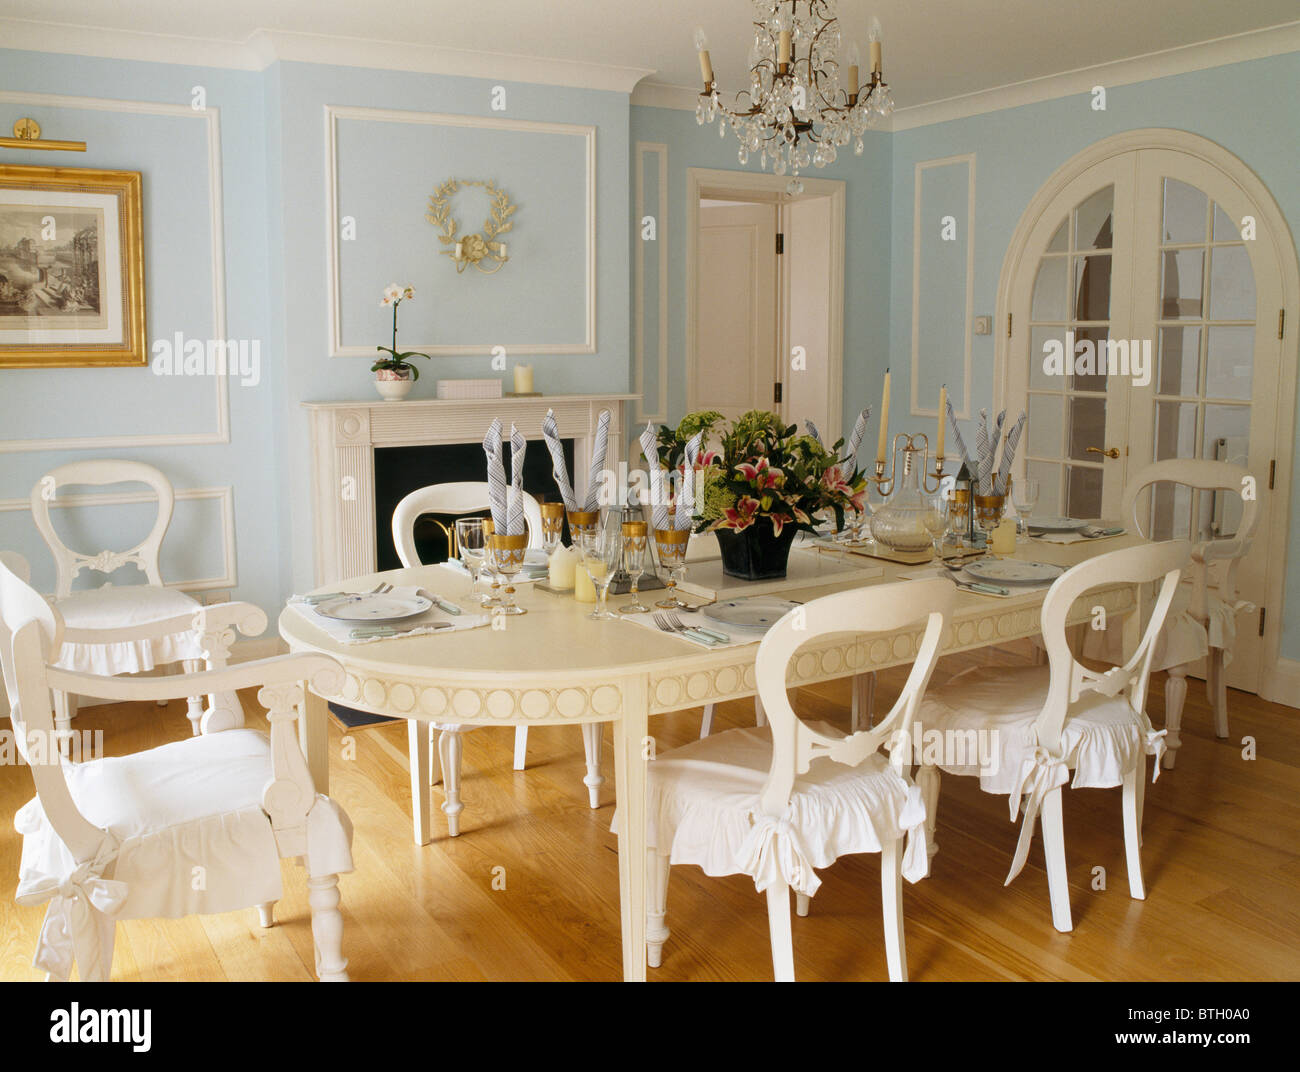 Painted Cream Table And Chairs With White Cushions In